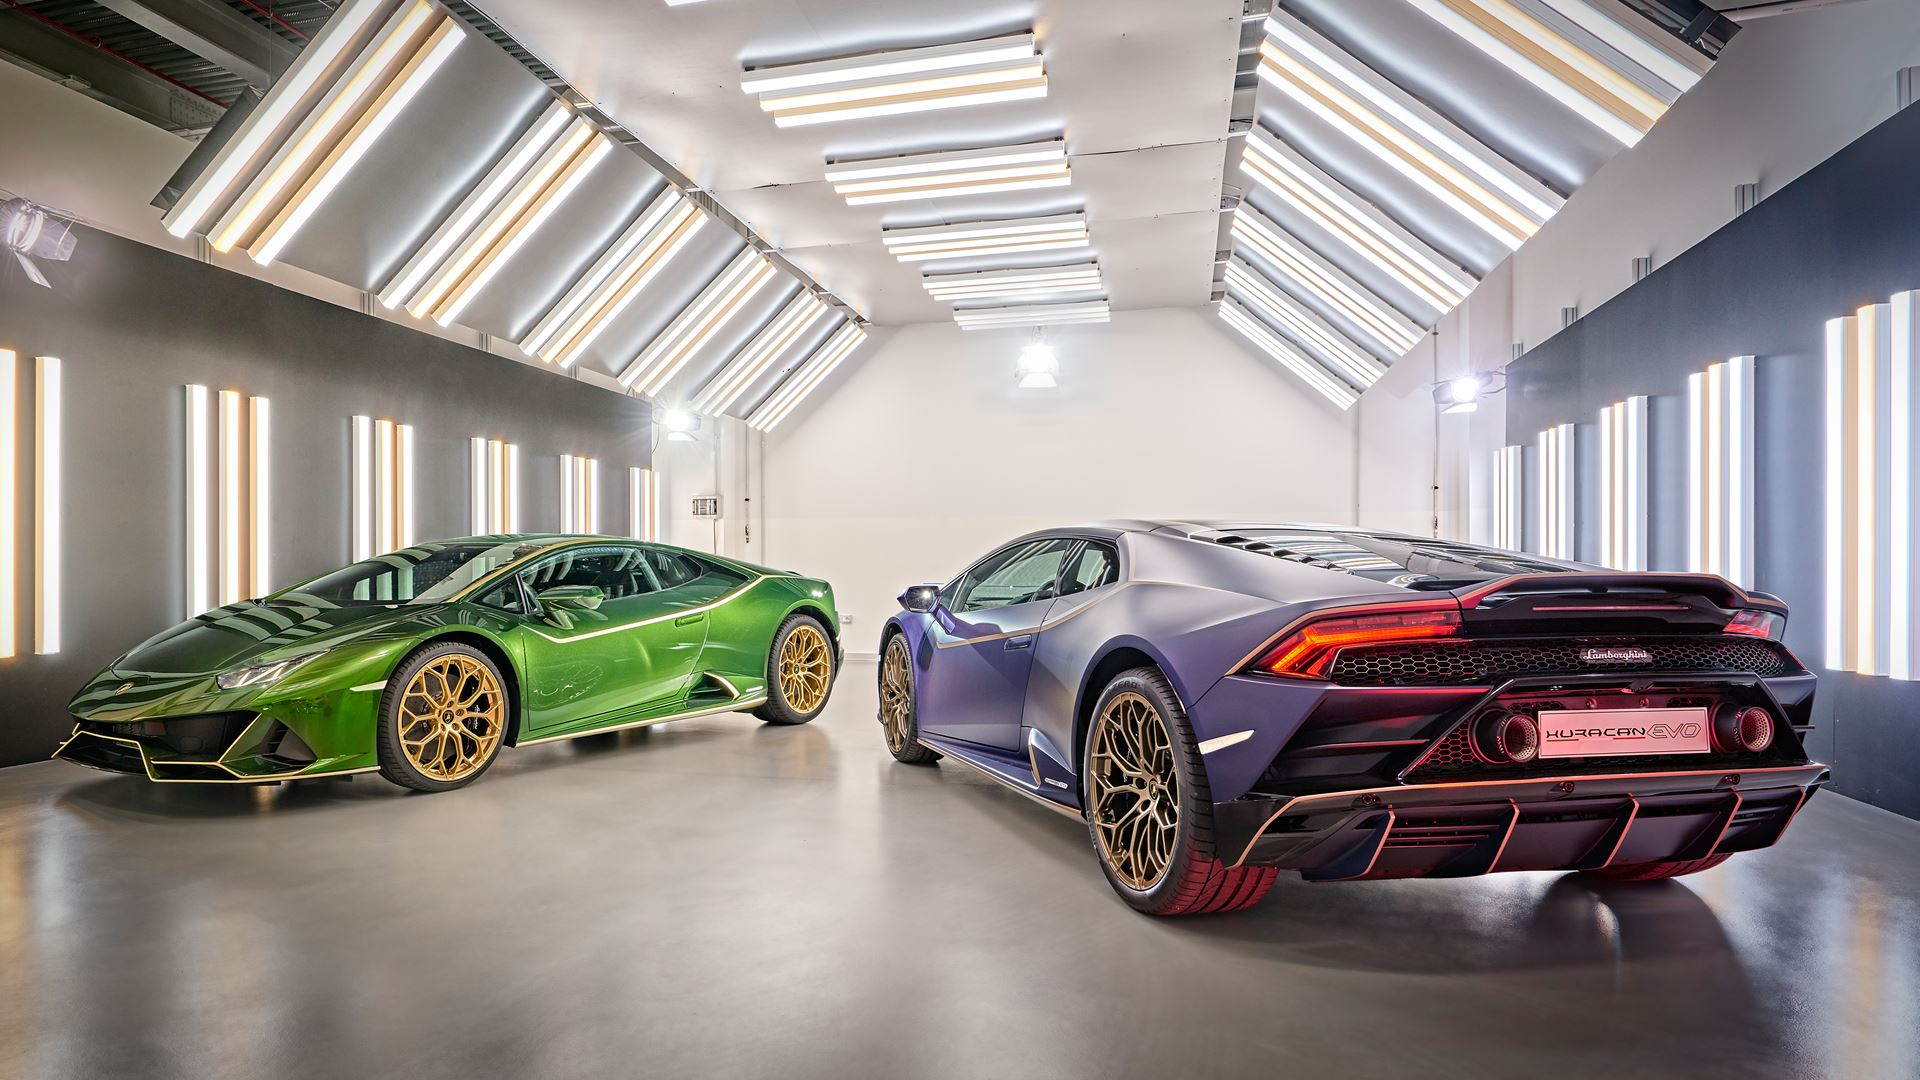 Lamborghini Mexico Commissions Special Edition Models To Commemorate 10 Years in the Region - Image 7